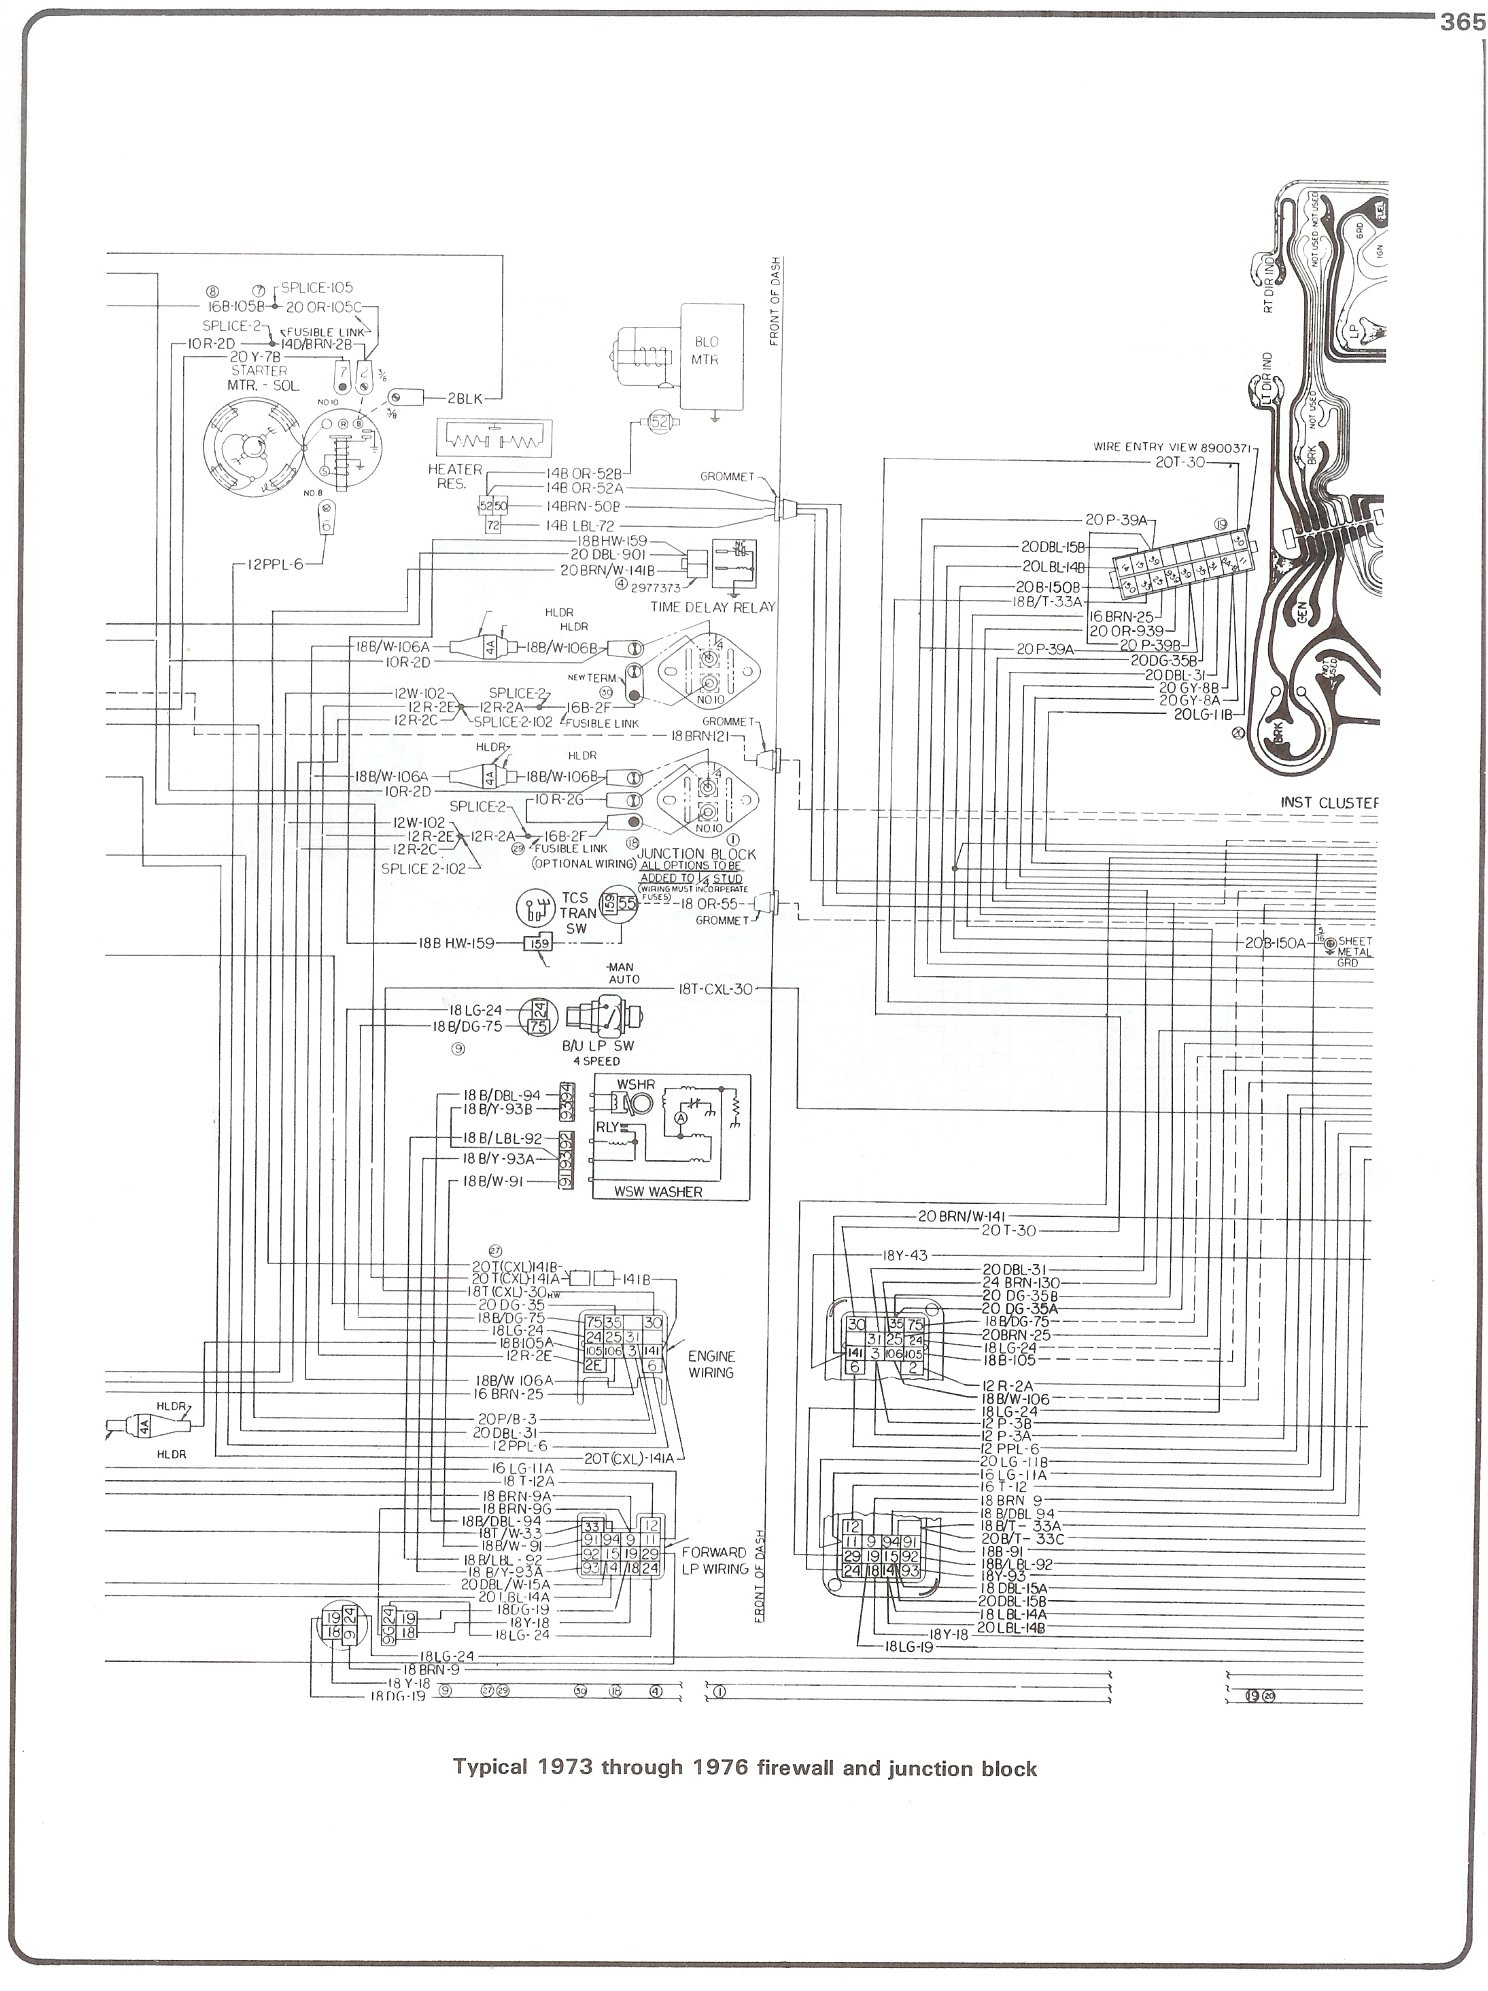 73 76_firewall_junct complete 73 87 wiring diagrams 1984 chevy truck fuse box diagram at panicattacktreatment.co